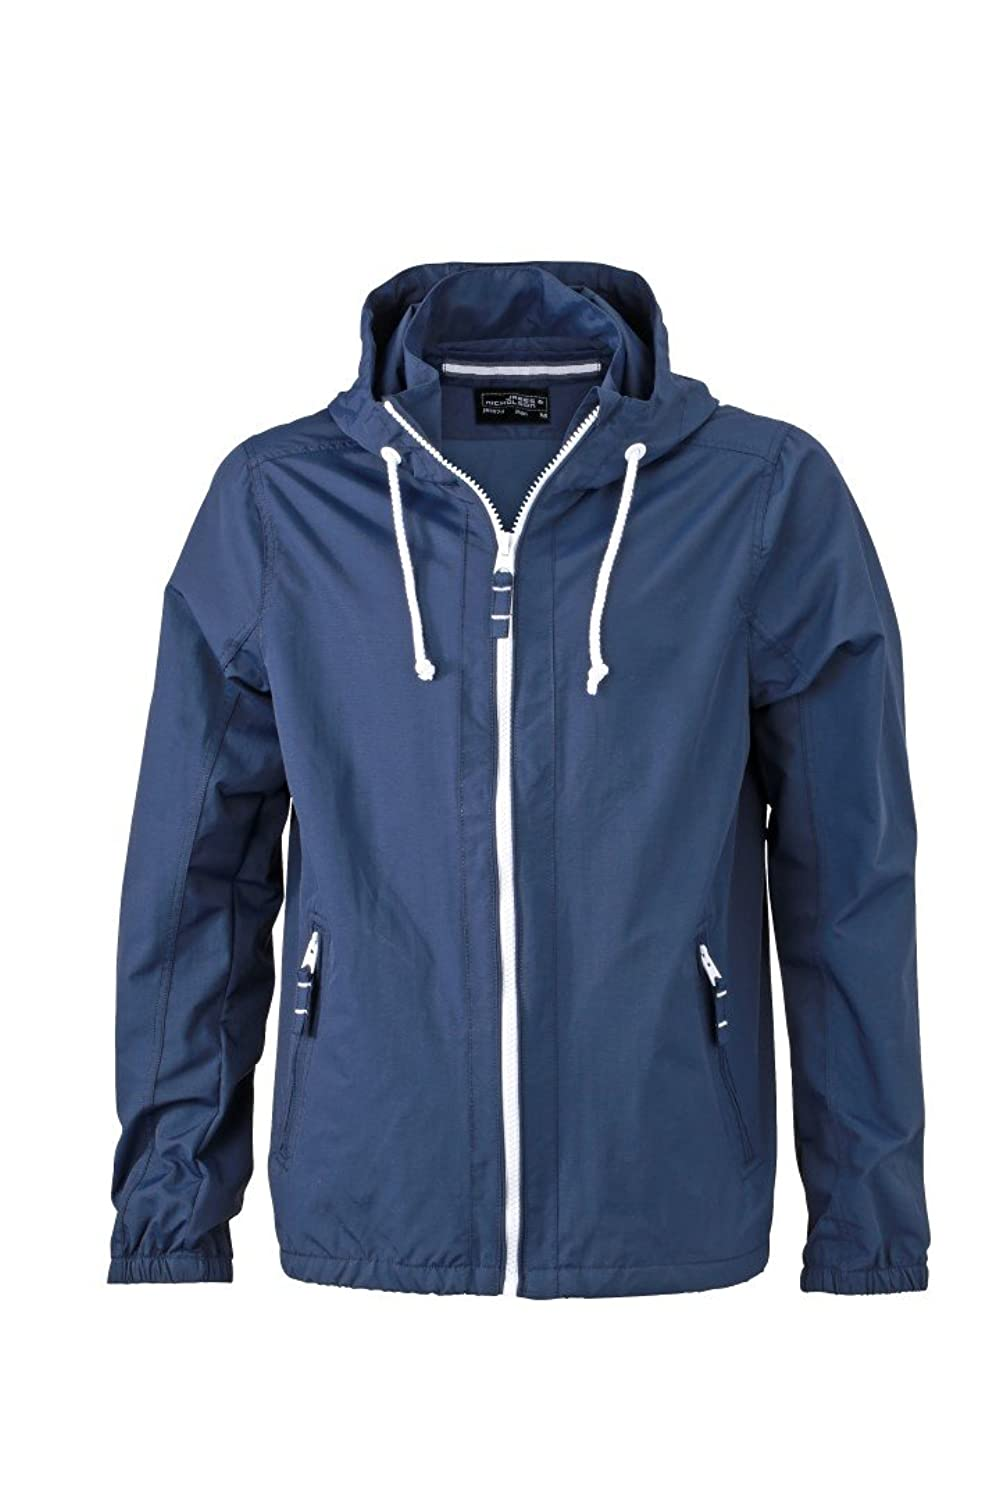 James & Nicholson Men's JN1074 Sailing Jacket